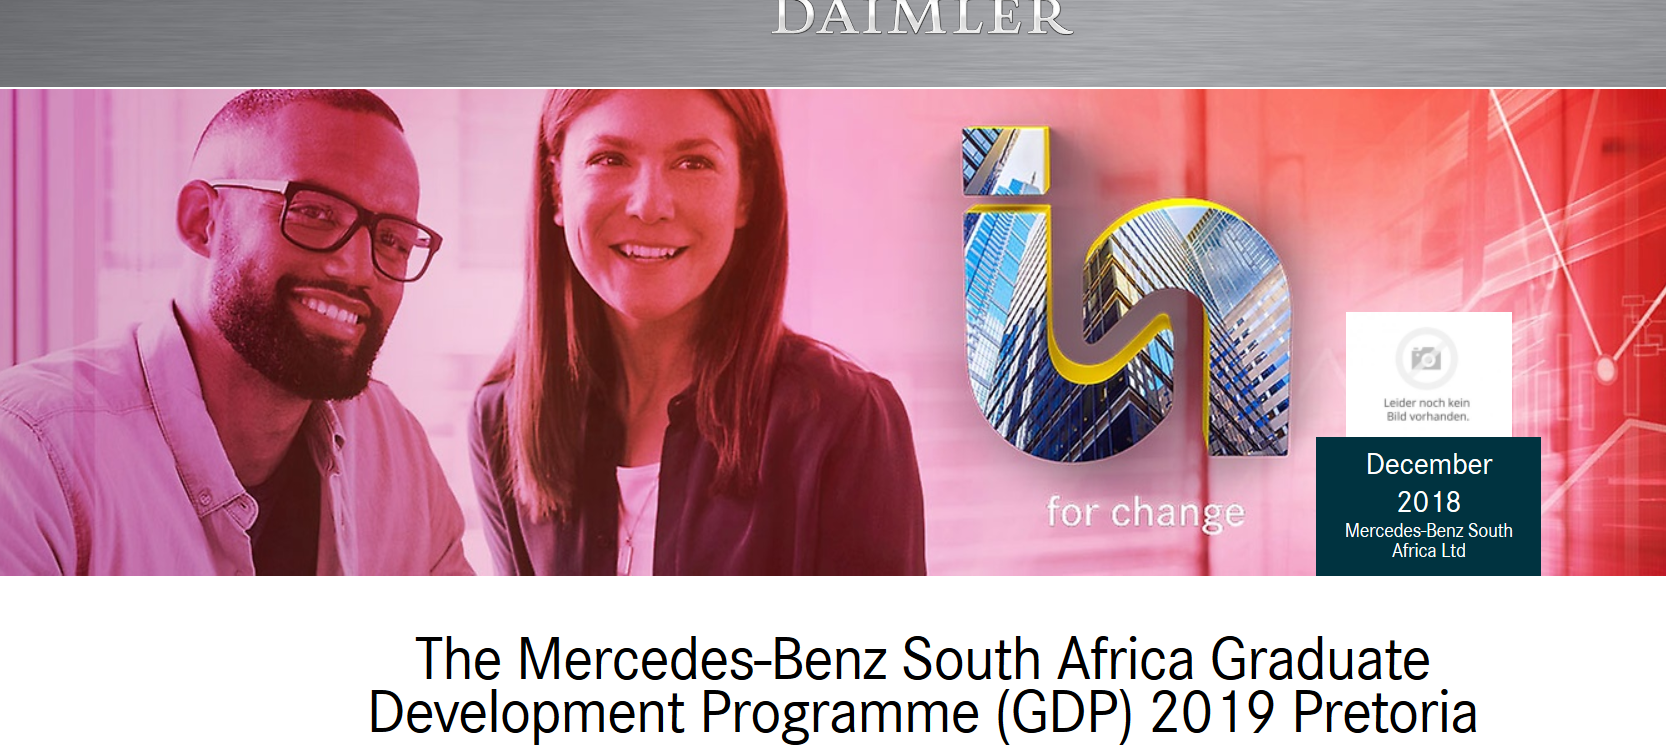 Mercedes-Benz South Africa Graduate Advancement Program (GDP) 2019 for young South Africans